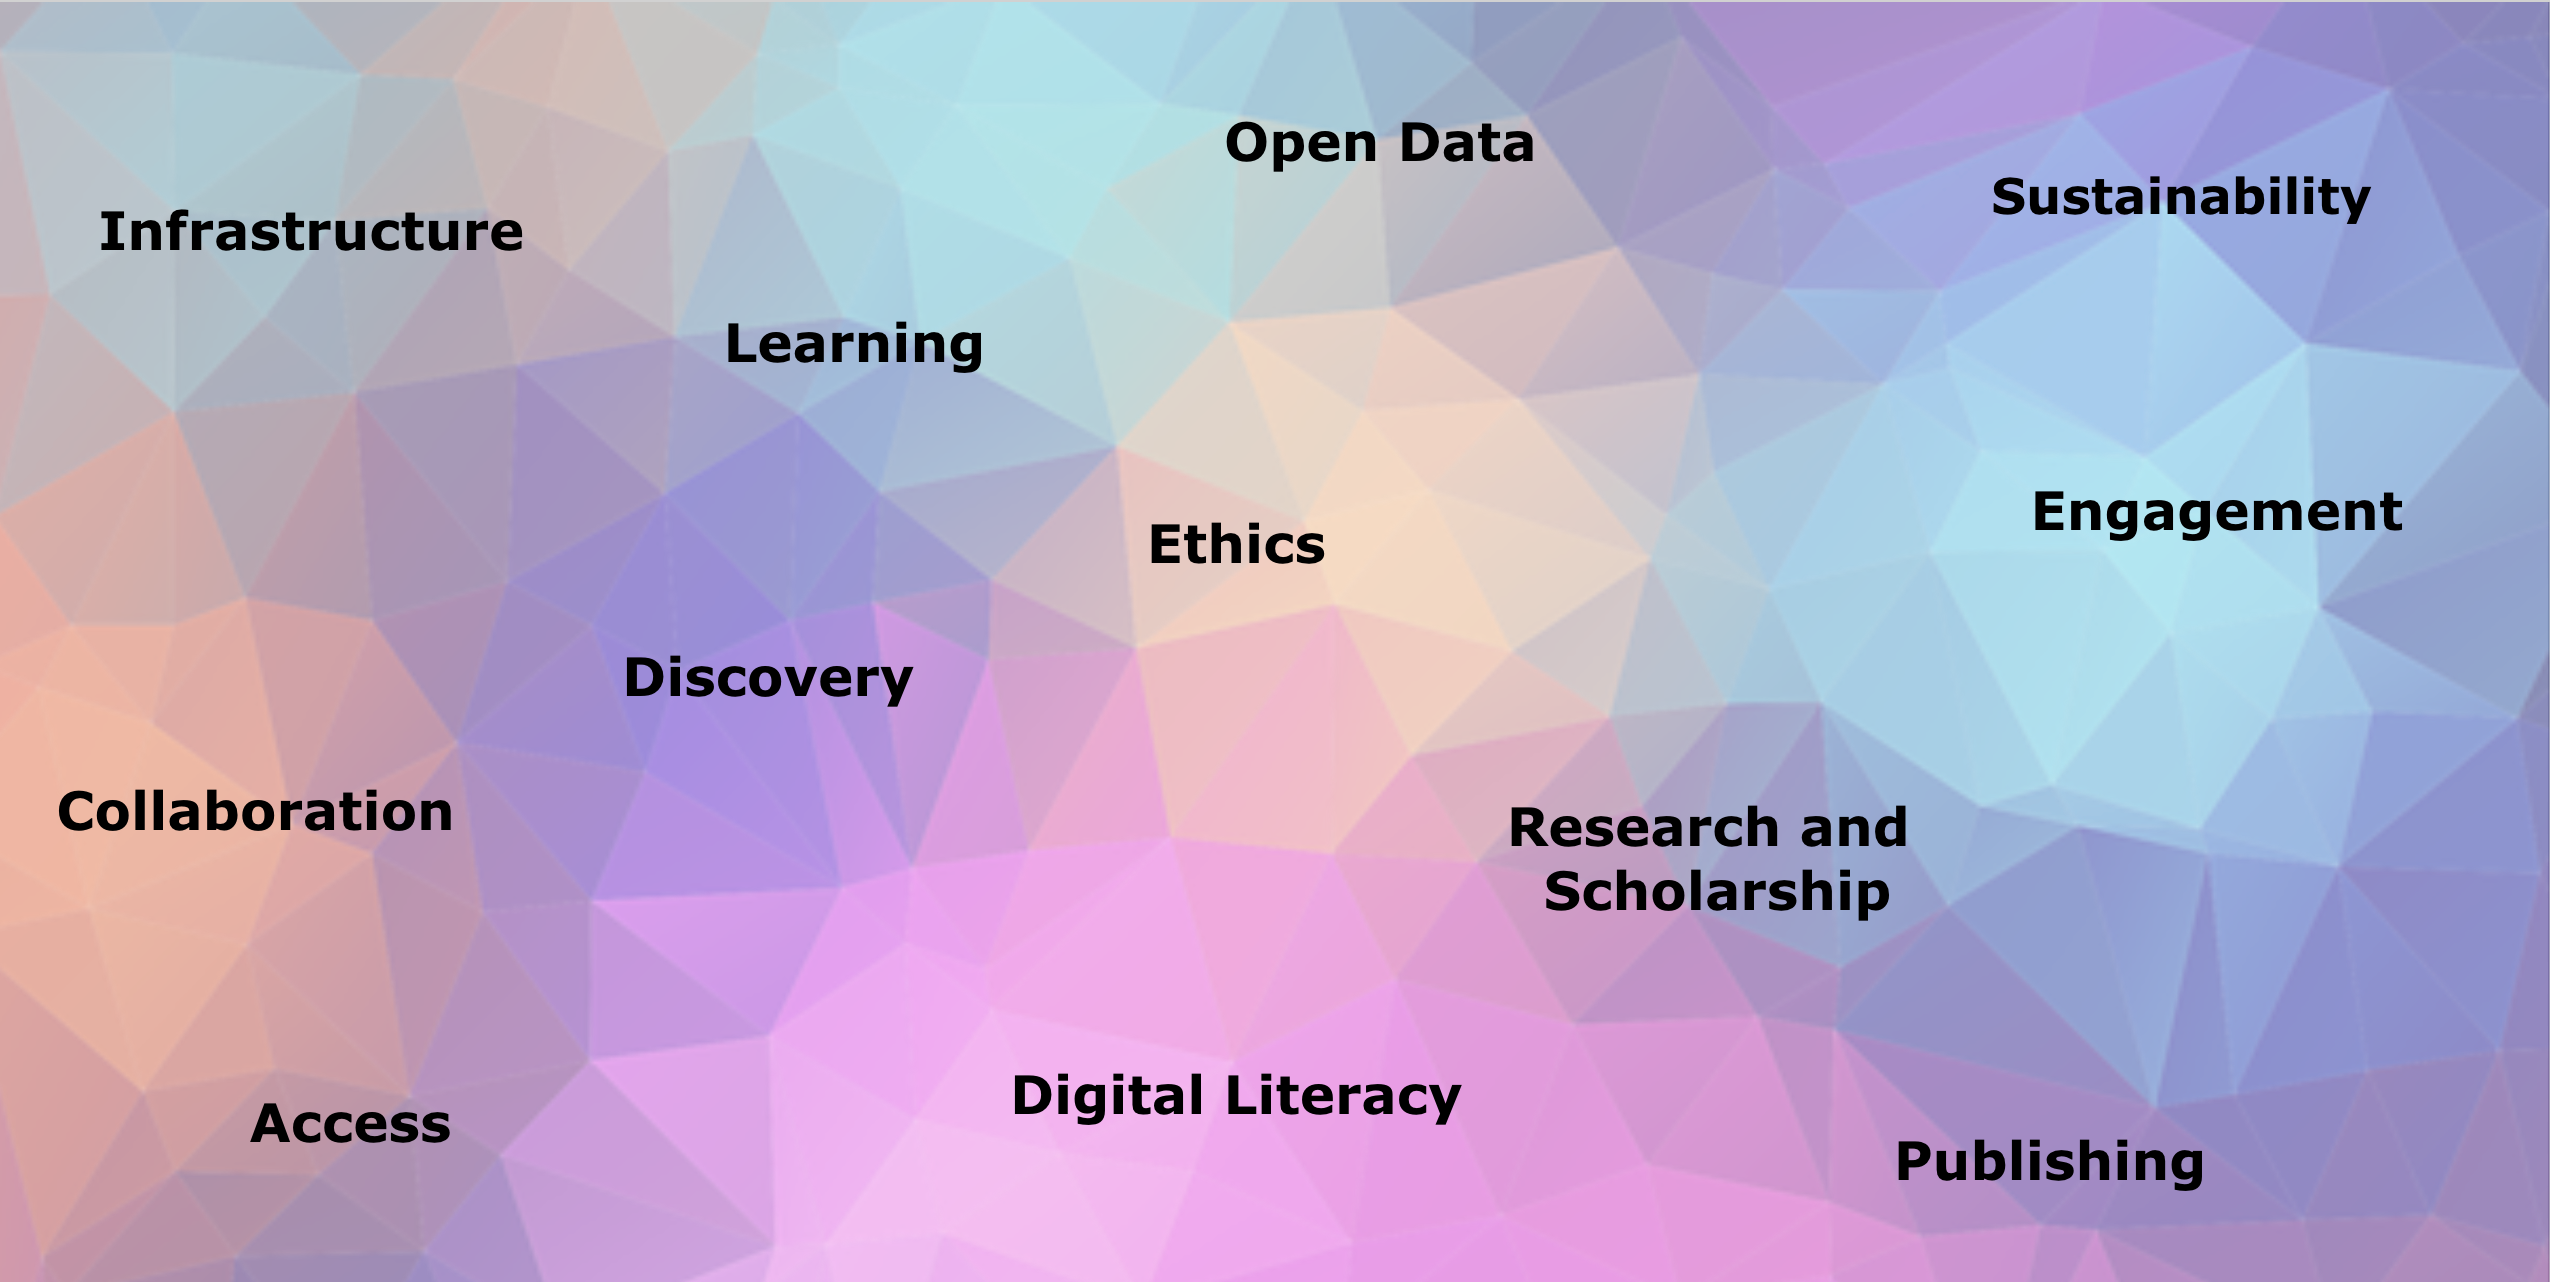 The picture is a multicolored background with topical words scattered across it. The words are: infrastructure, learning, collaboration, discovery, access, open data, ethics, digital literacy, research and scholarship, sustainability, engagement, and publishing.